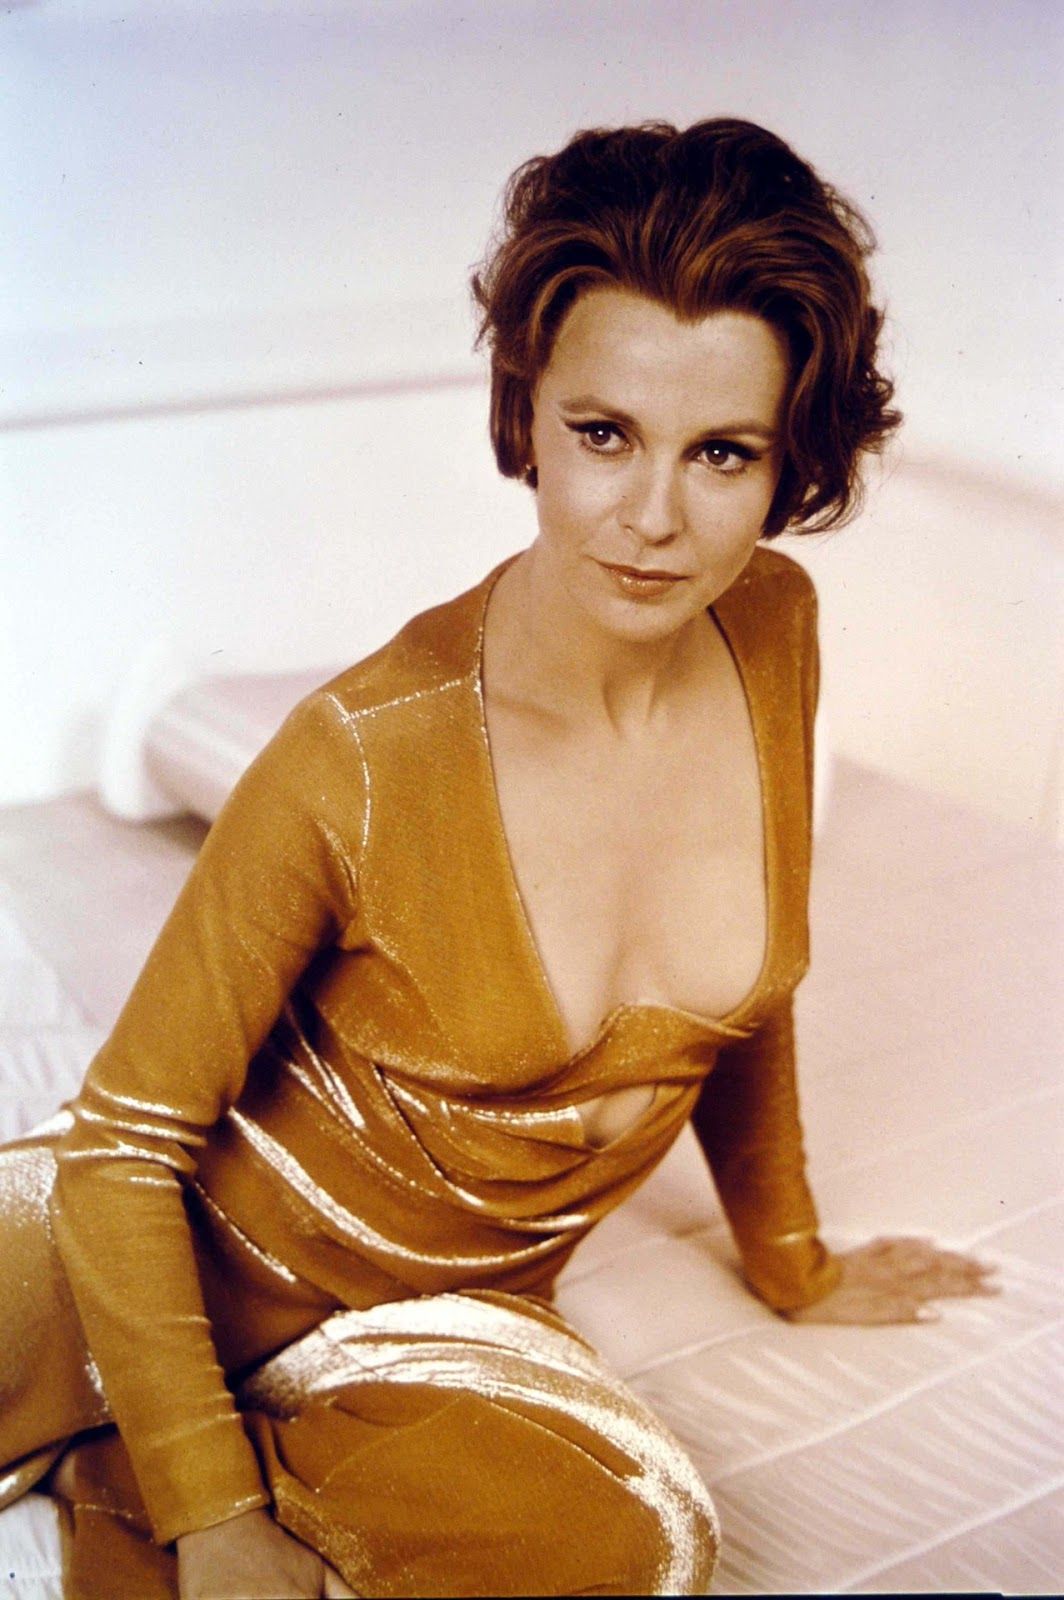 Claire bloom nude